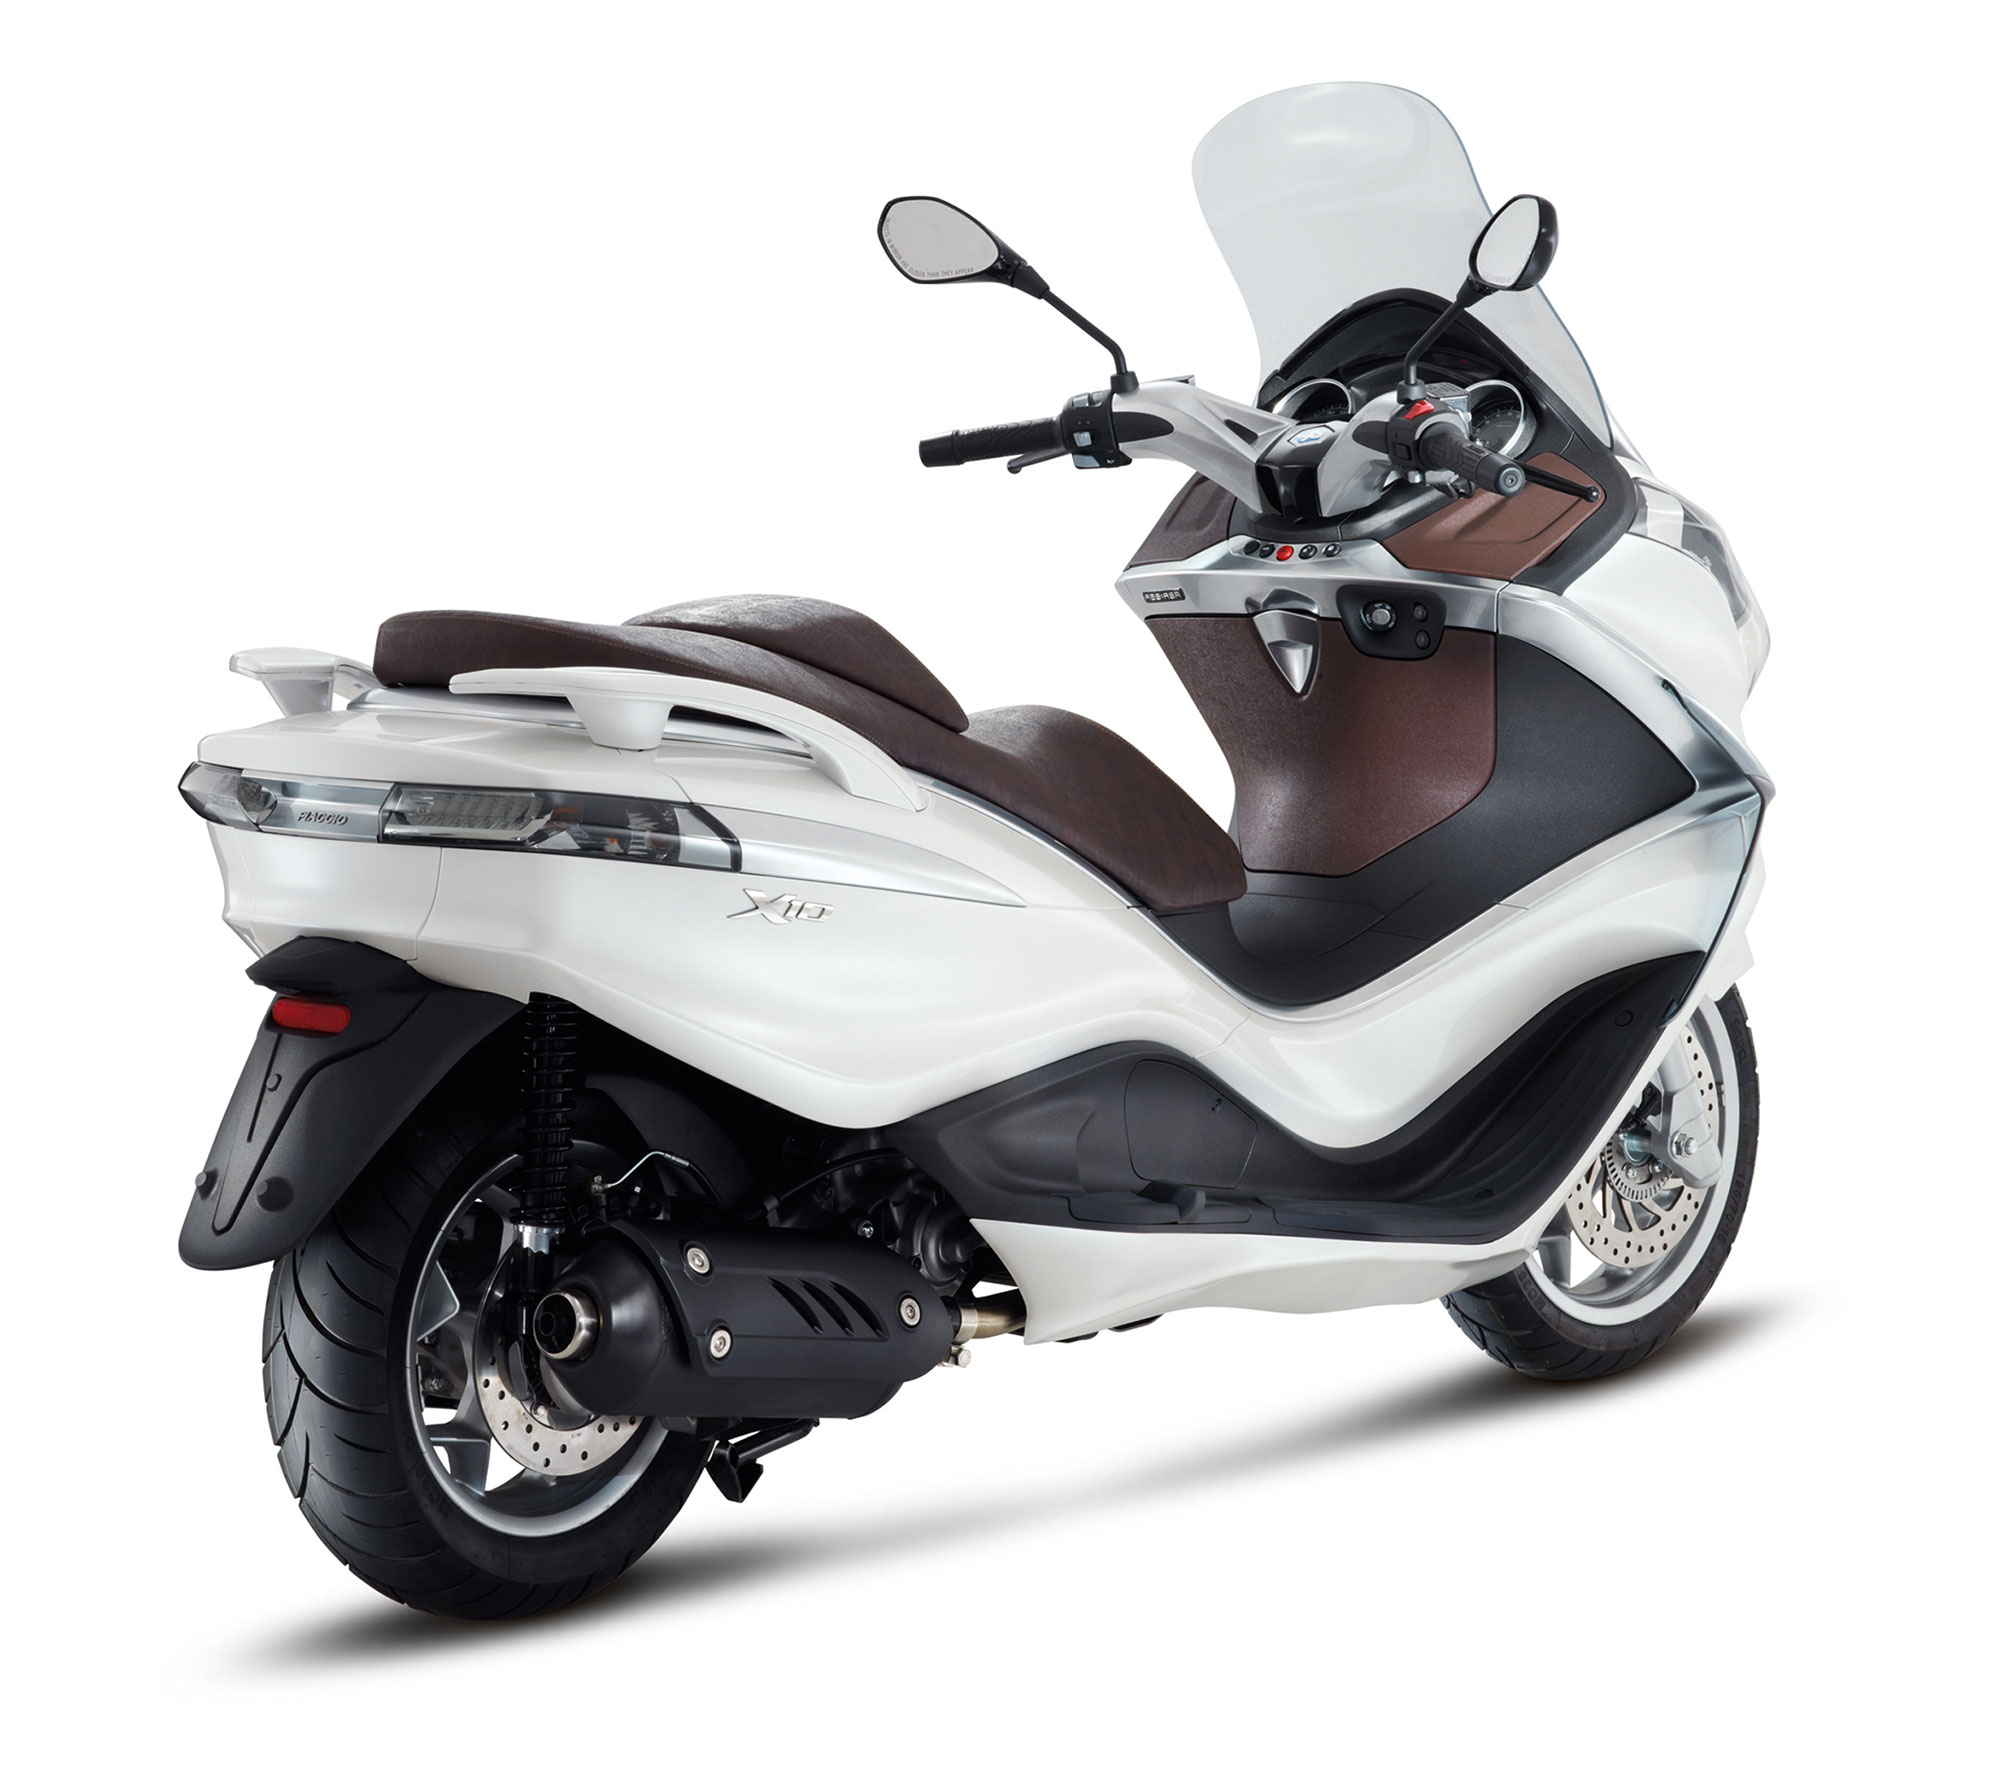 2013 piaggio x10 125 scooter review. Black Bedroom Furniture Sets. Home Design Ideas